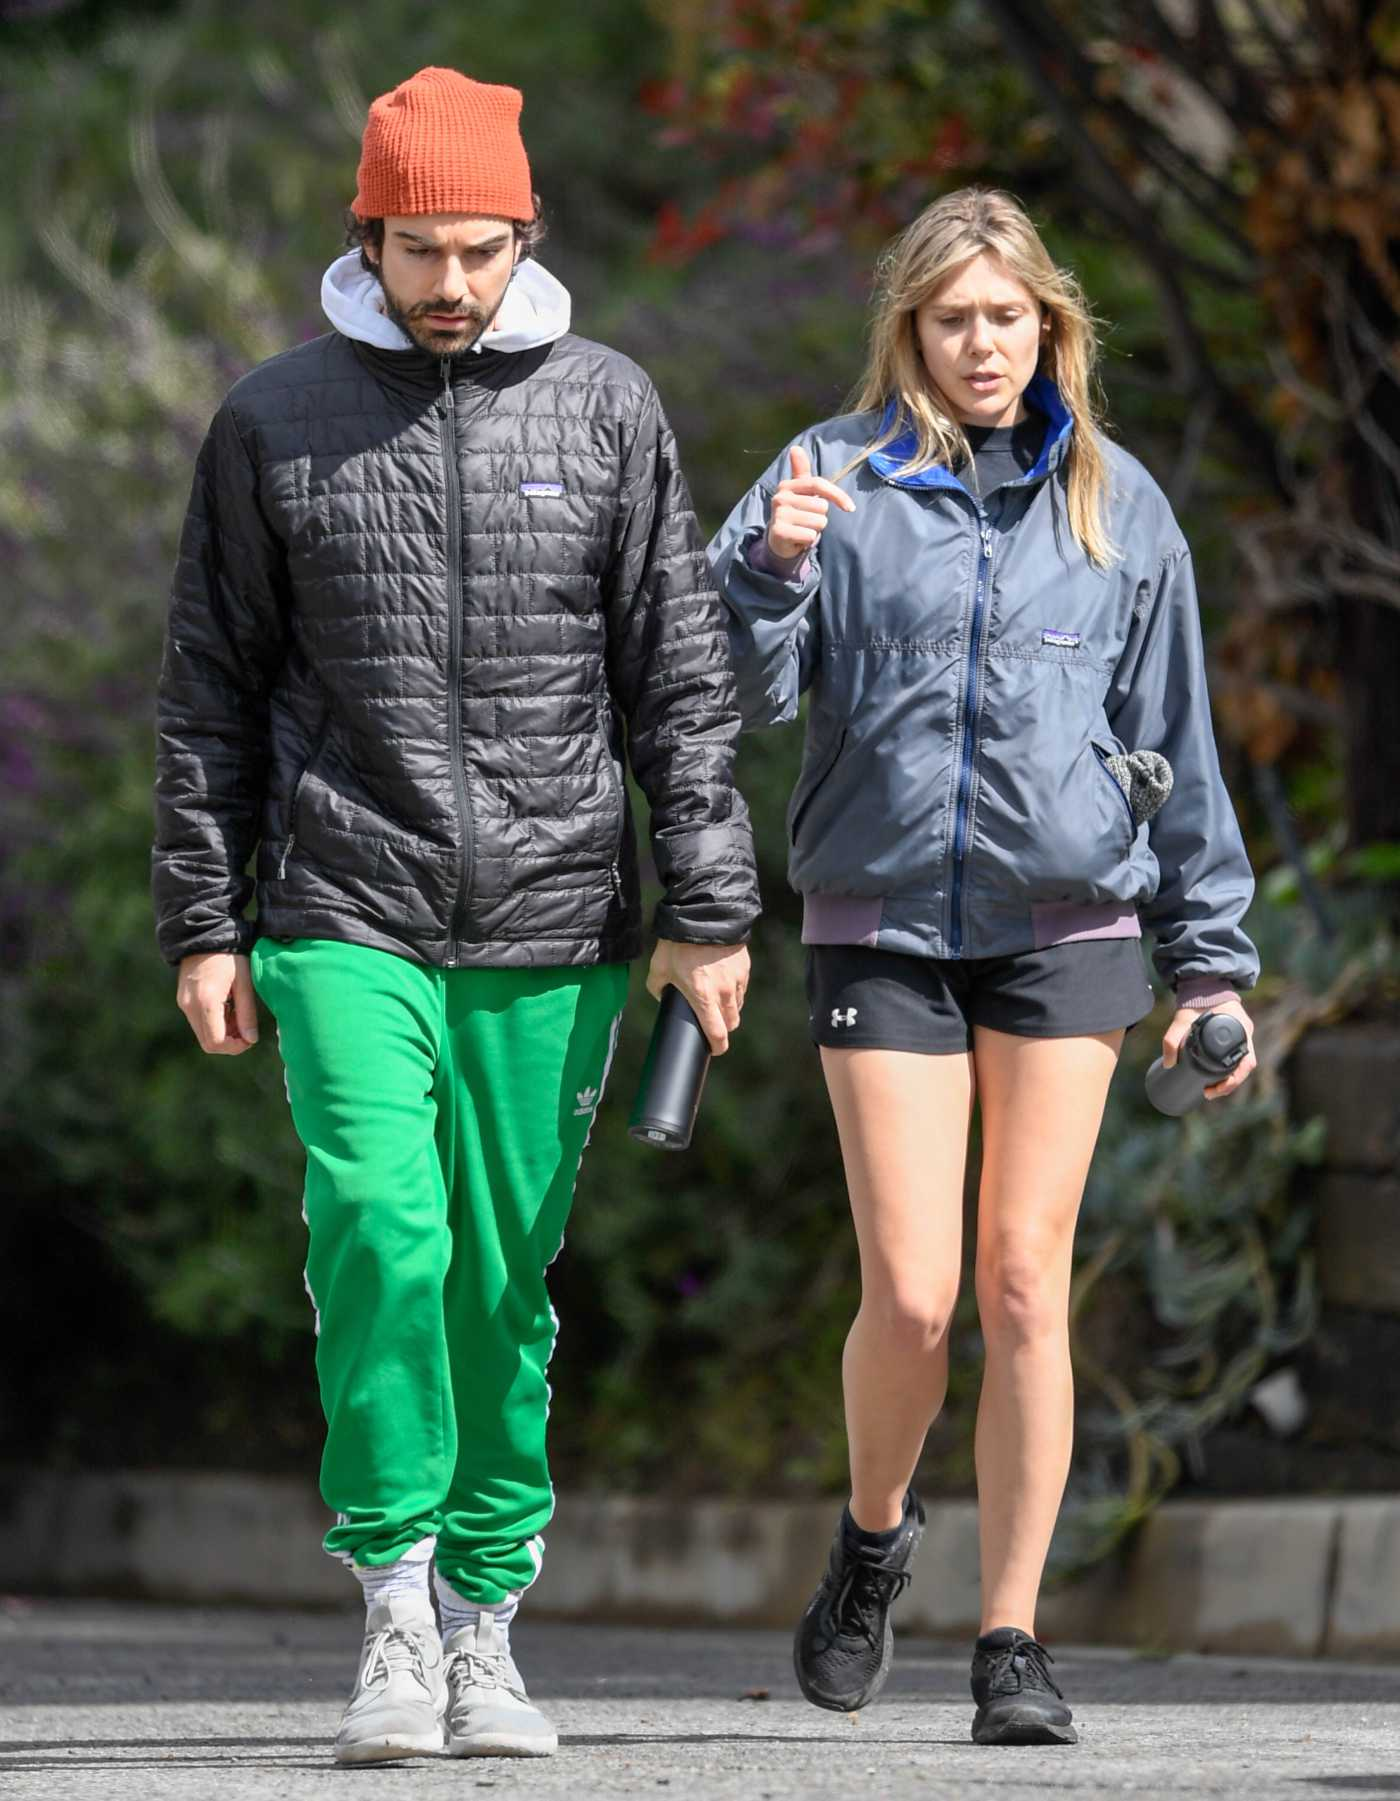 Elizabeth Olsen in a Black Sneakers Was Seen Out with Robbie Arnett in Sherman Oaks 03/23/2020